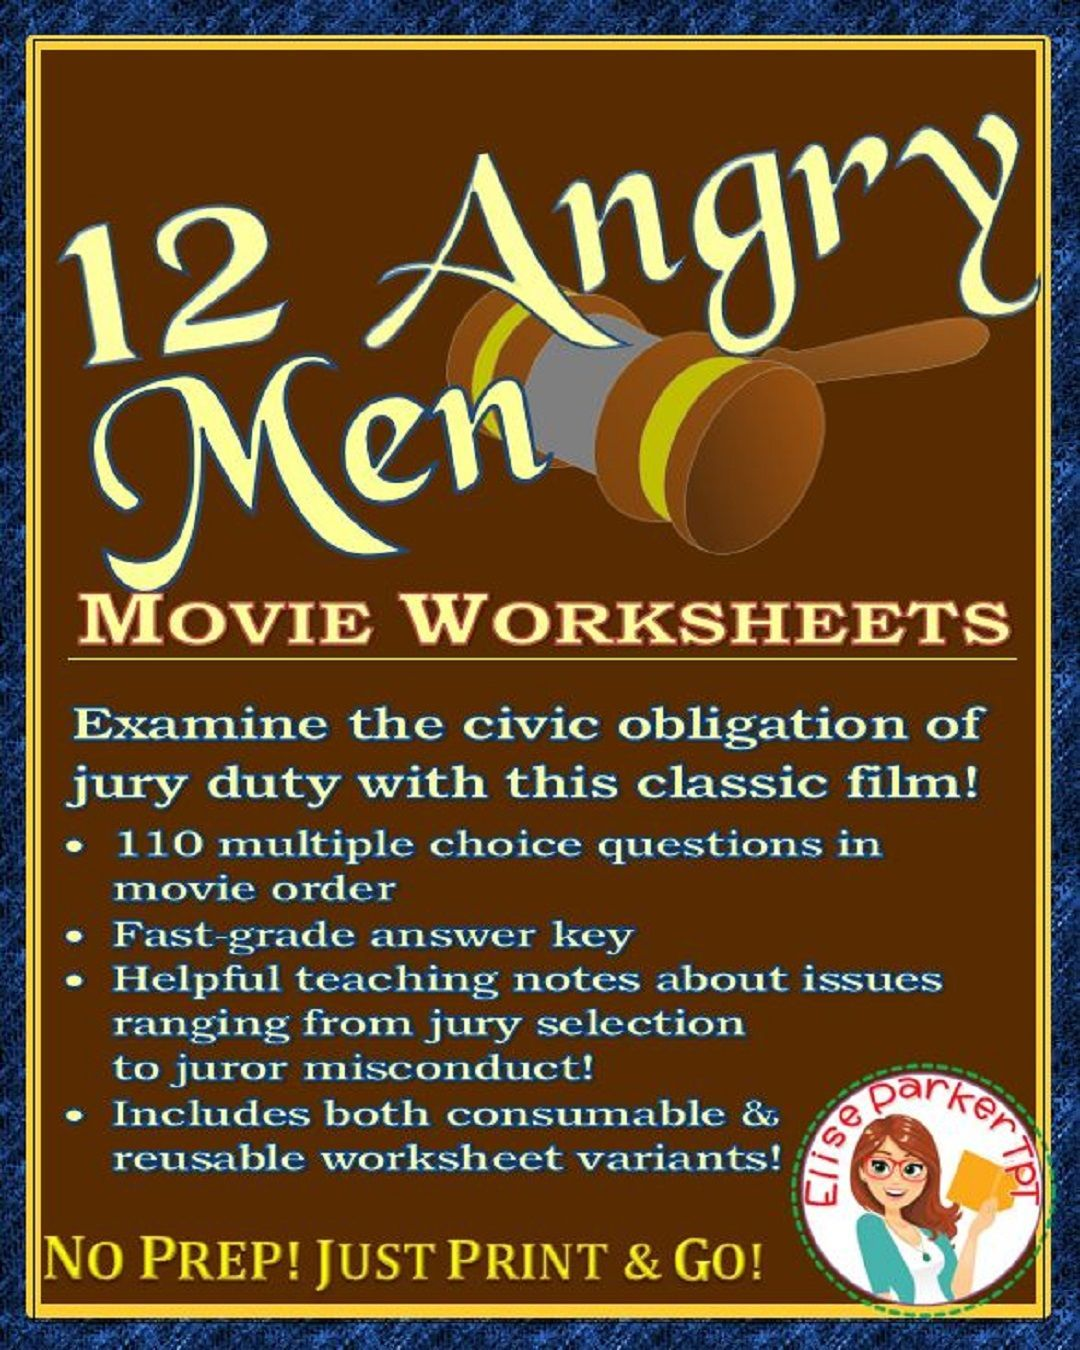 12 Angry Men Movie Worksheets Critical Thinking Activities This Or That Questions Choice Questions